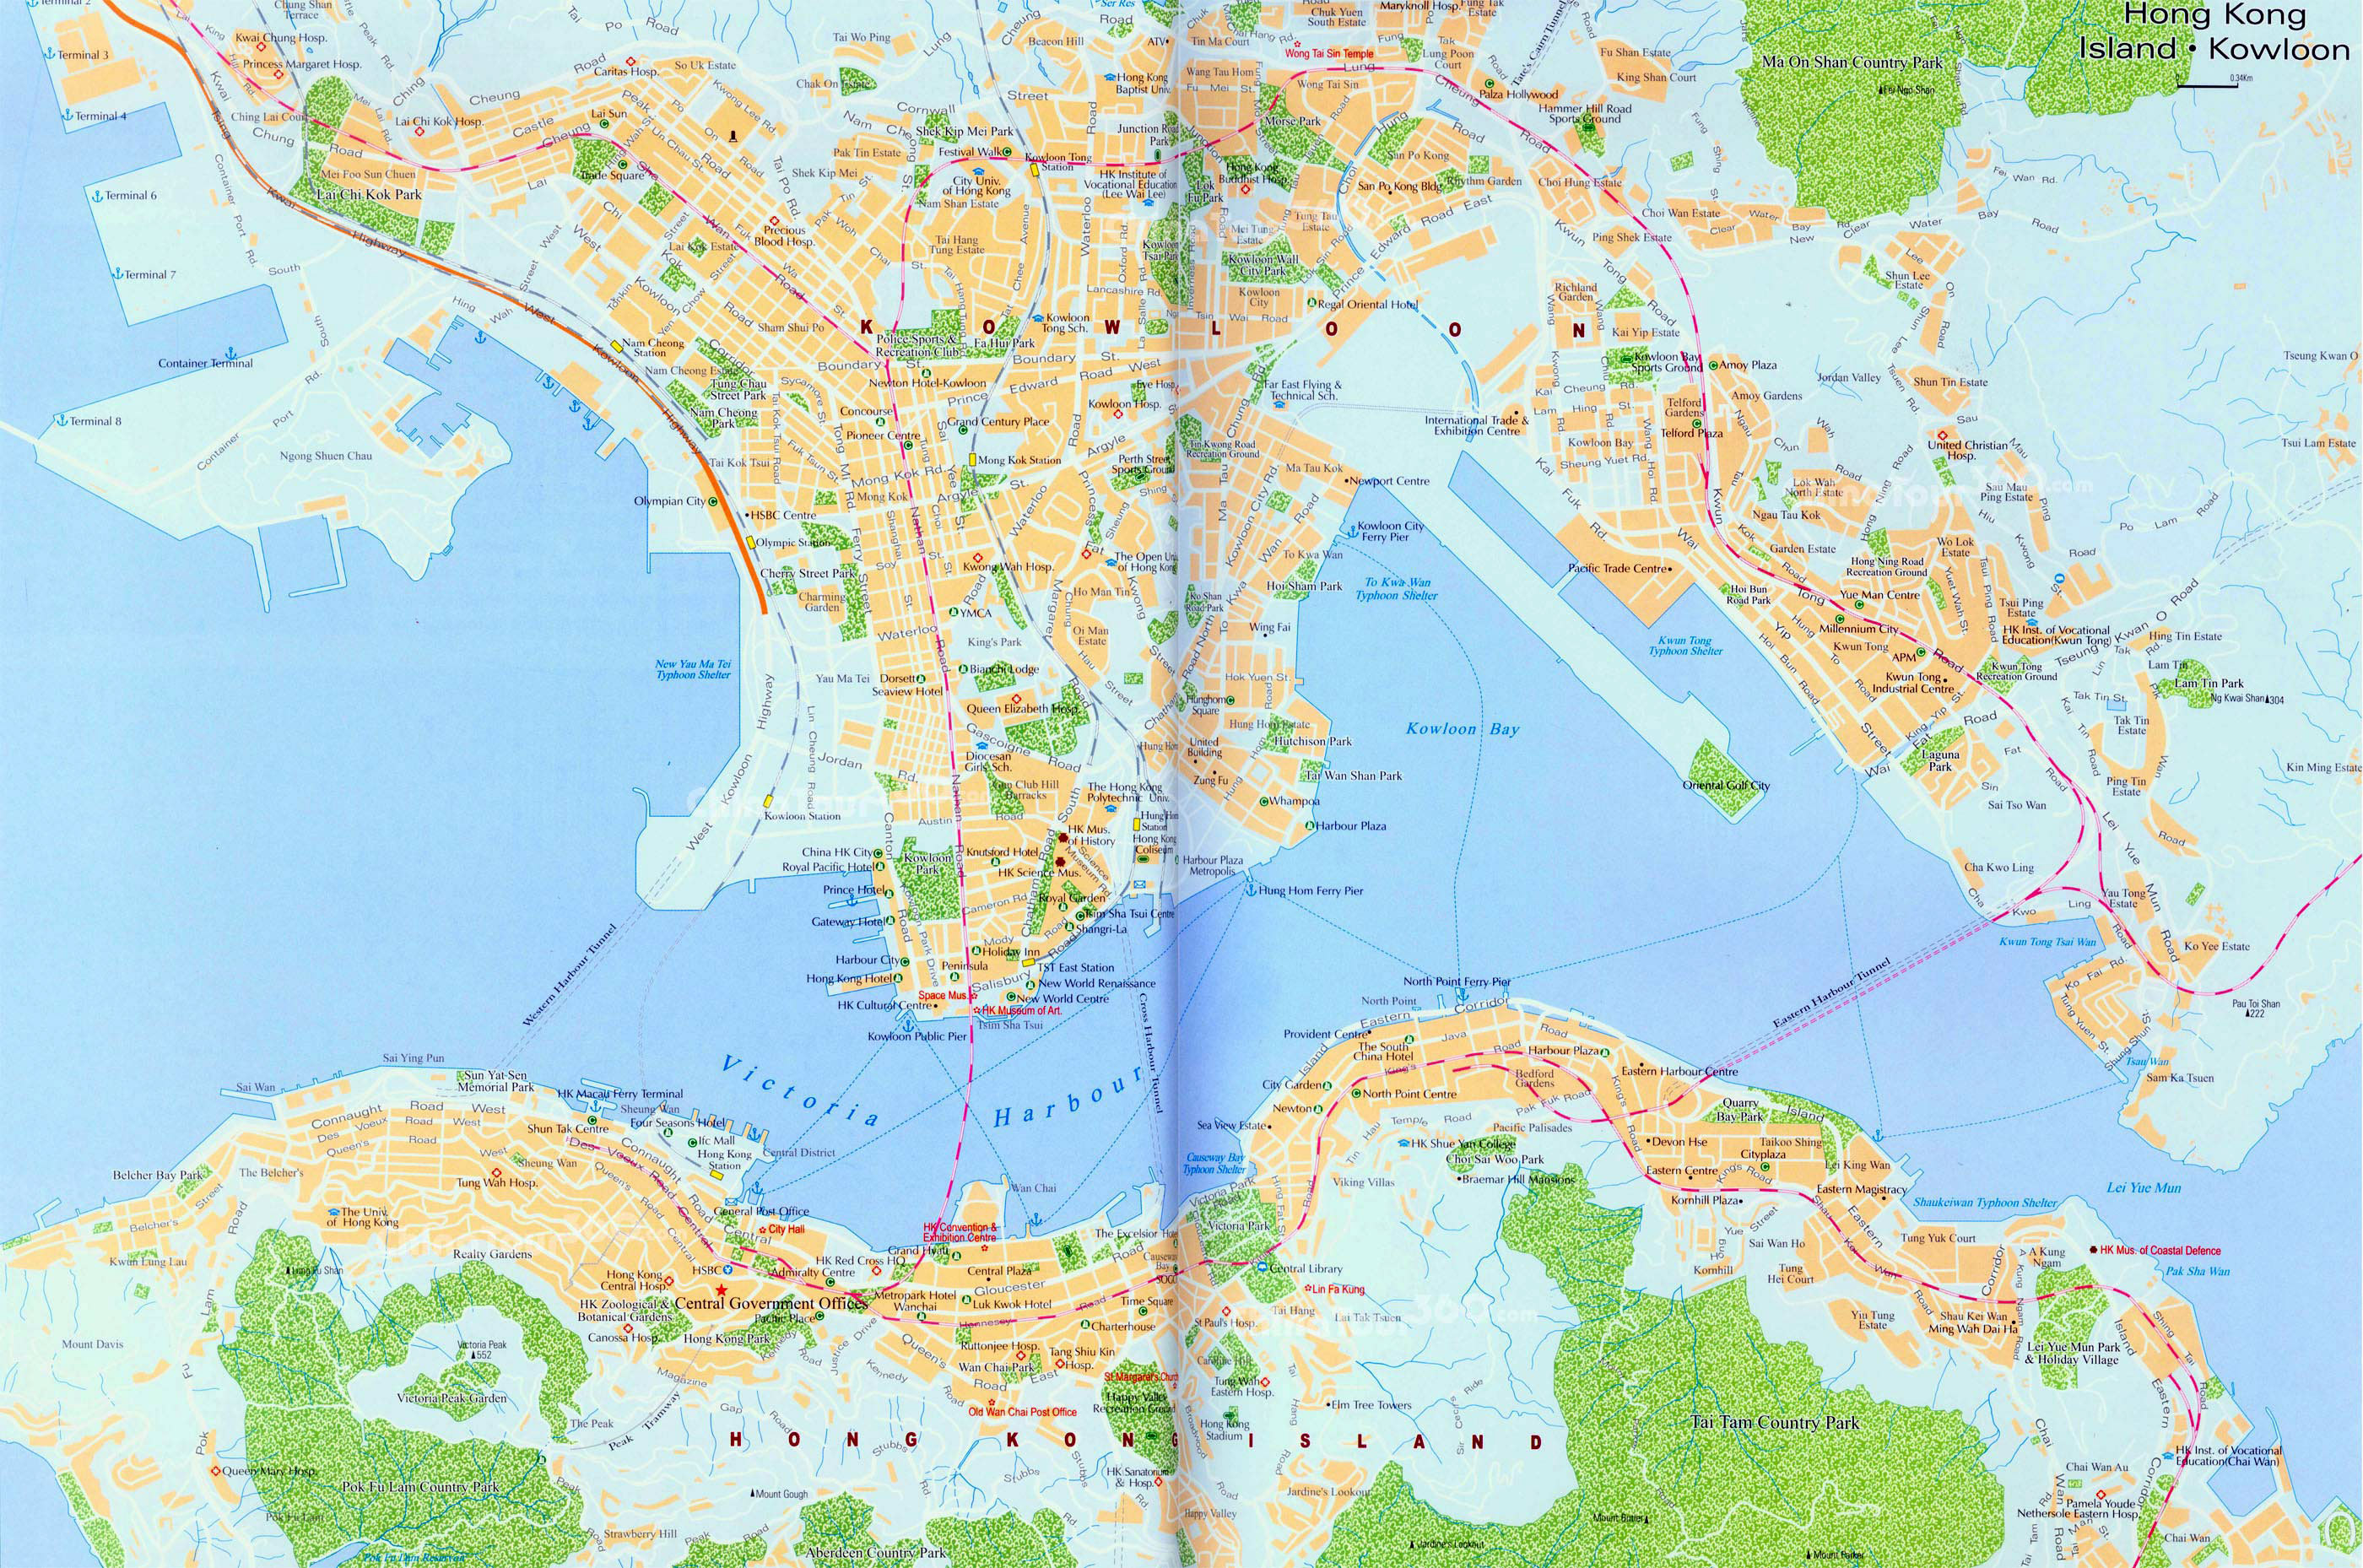 Maps of hong kong detailed map of hong kong in english tourist detailed road map of hong kong city gumiabroncs Images